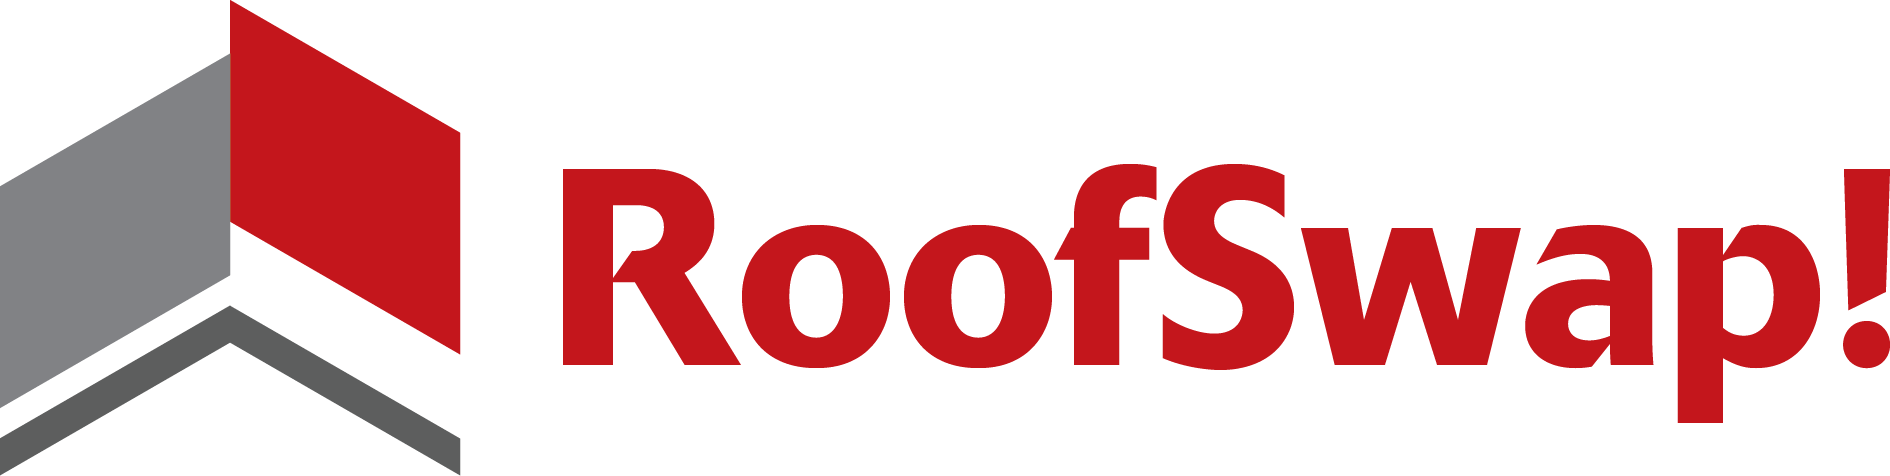 Roof swap logo